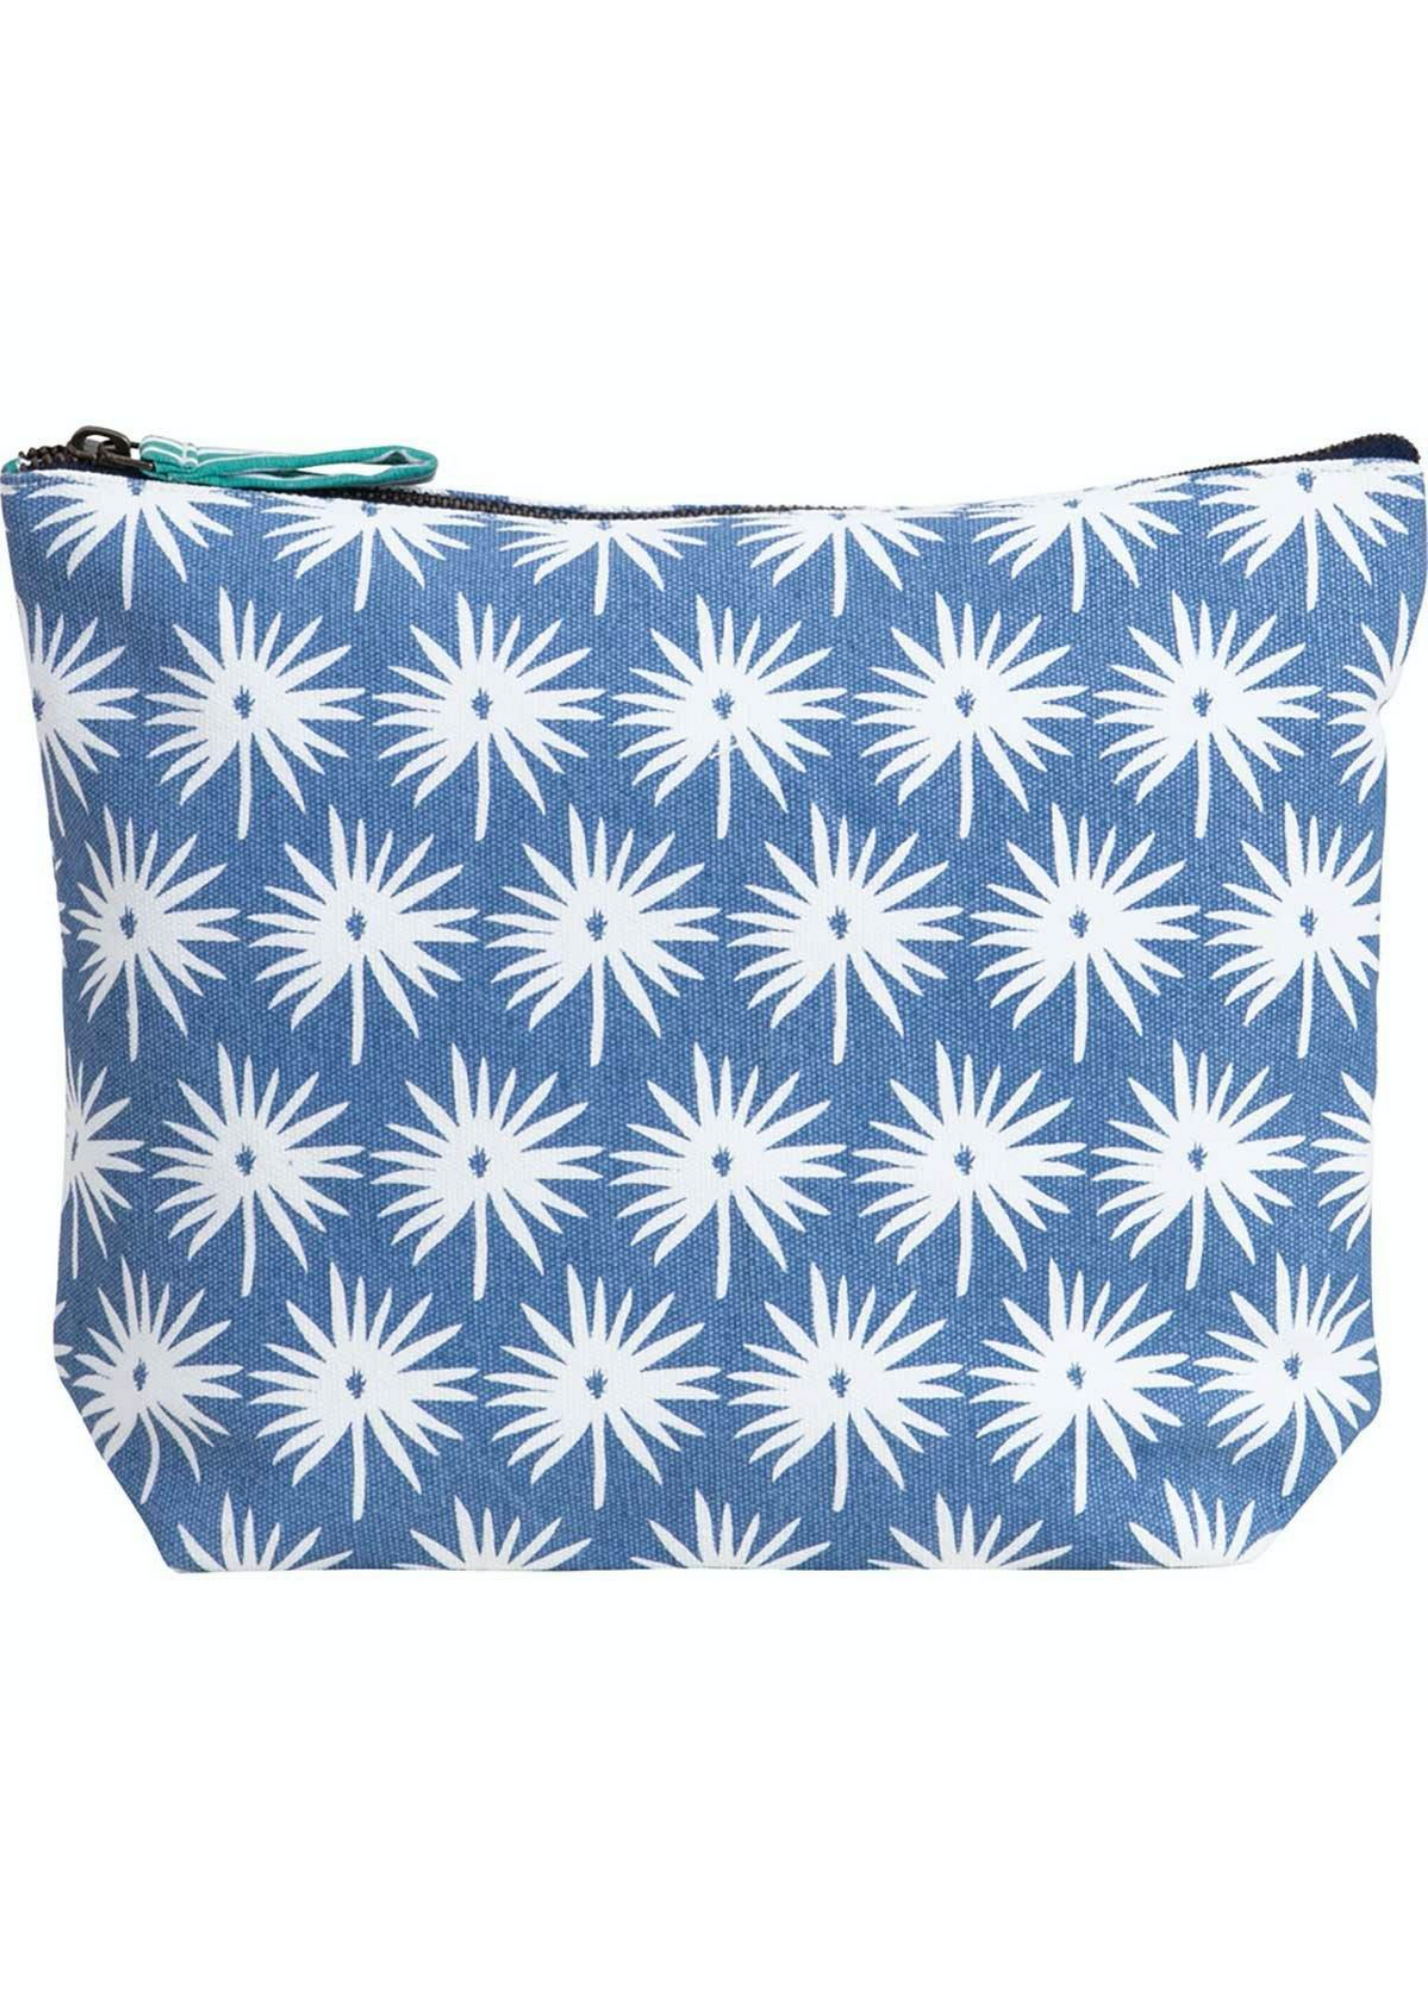 Palmetto Blue Relaxed Pouch - Large